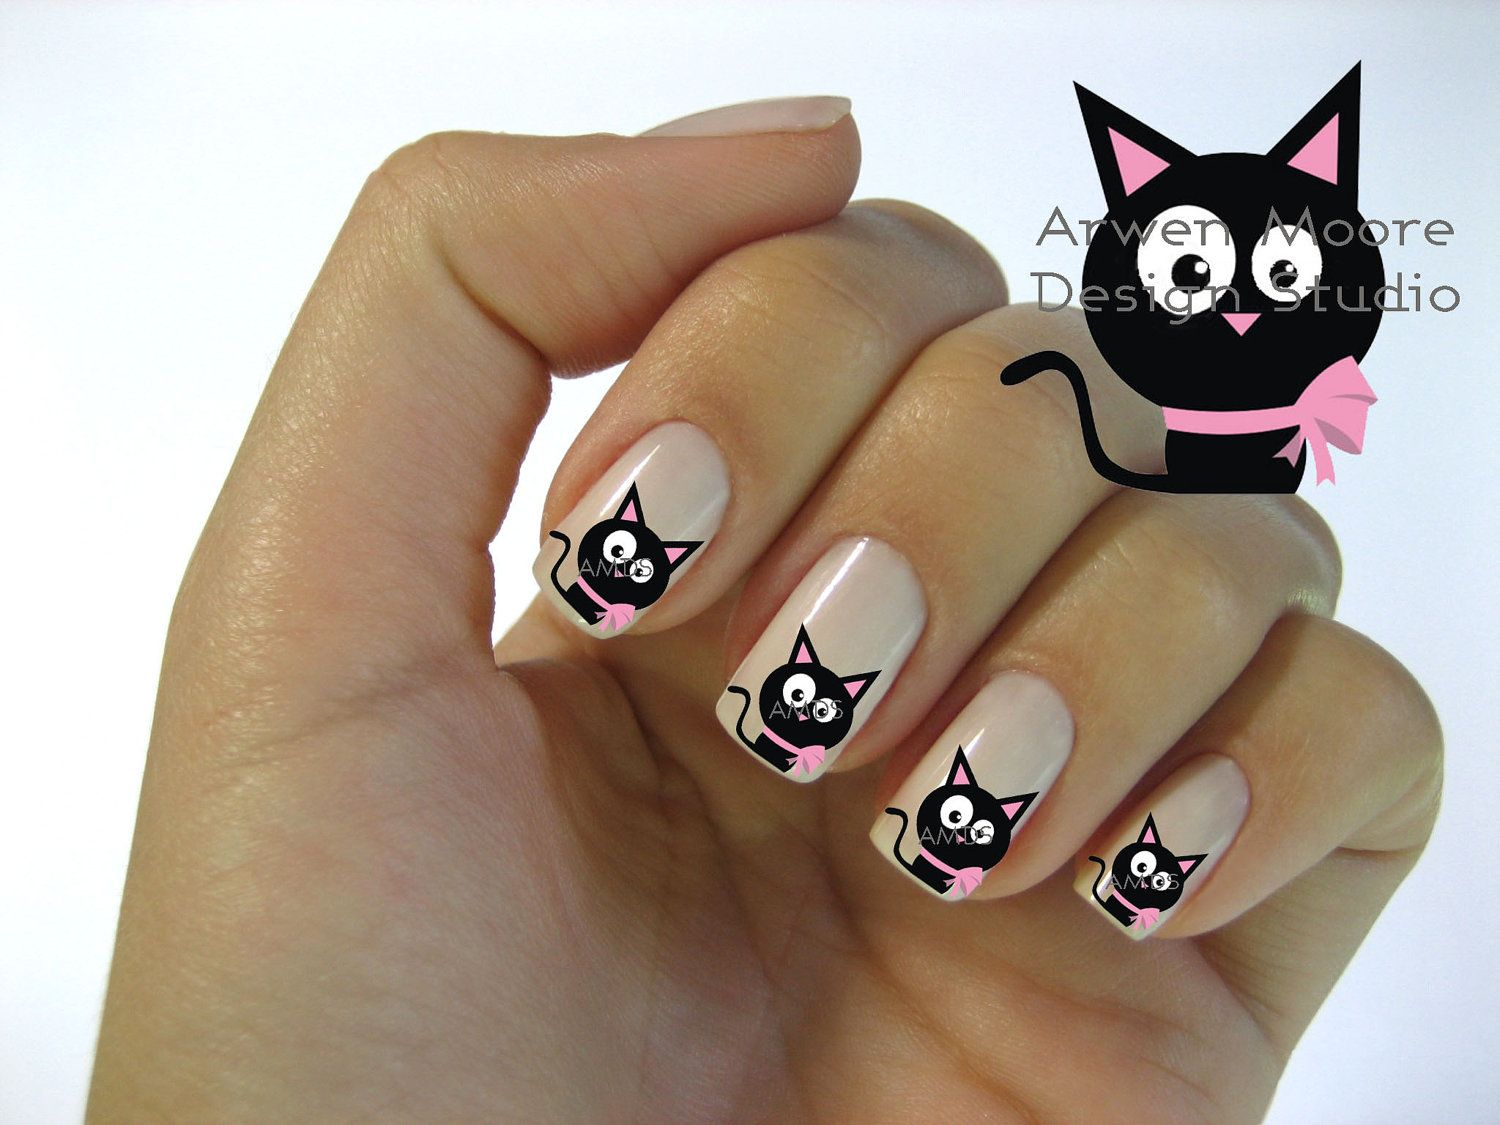 Very Chic Mod Black Cat Pink Gift Bow Nail Art Waterslide Water Decals  Miniature - cat - Very Chic Mod Black Cat Pink Gift Bow Nail Art Waterslide Water